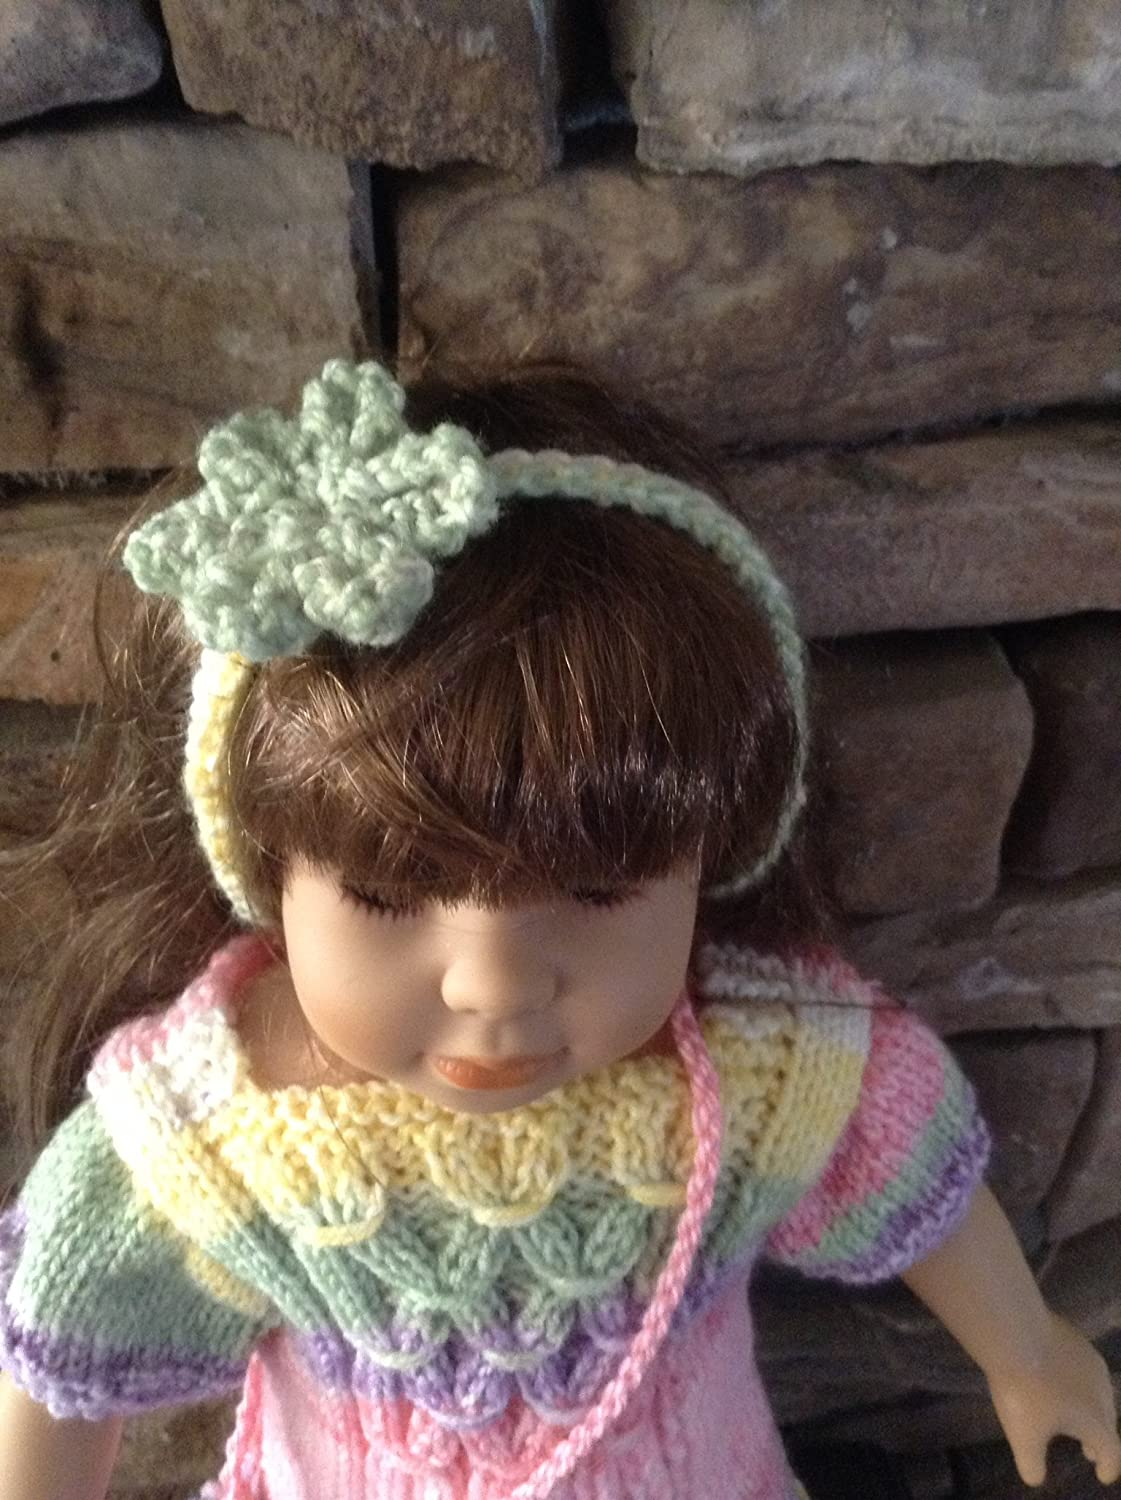 Hand knitted Dress for 18 inch dolls with Purse and headband